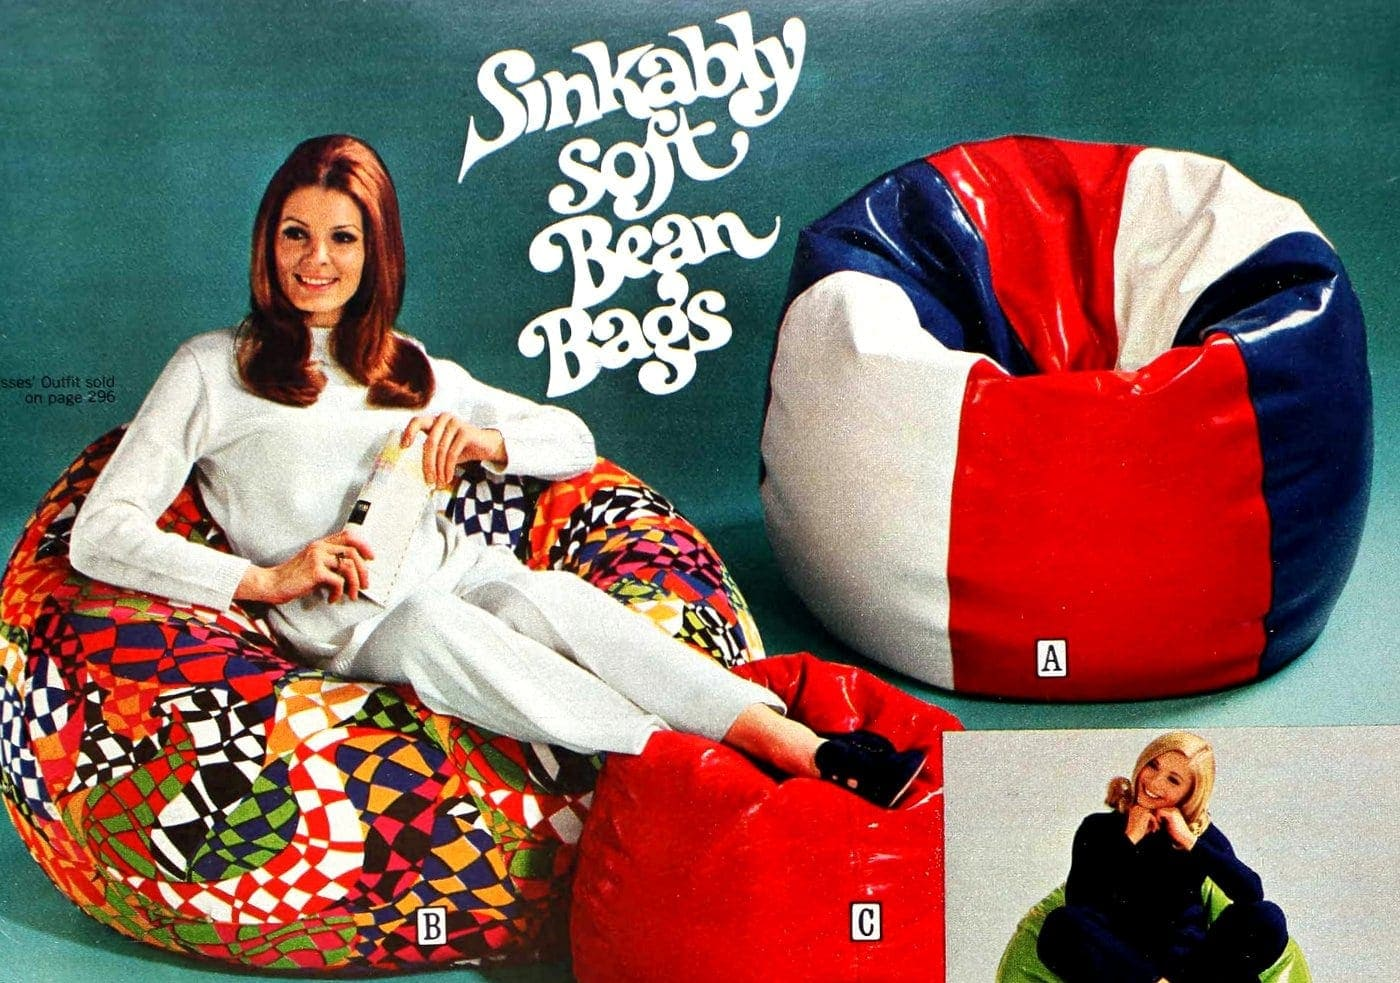 Vintage Beanbags Bean Bag Chairs The Retro 70s Casual Seating Fad Click Americana